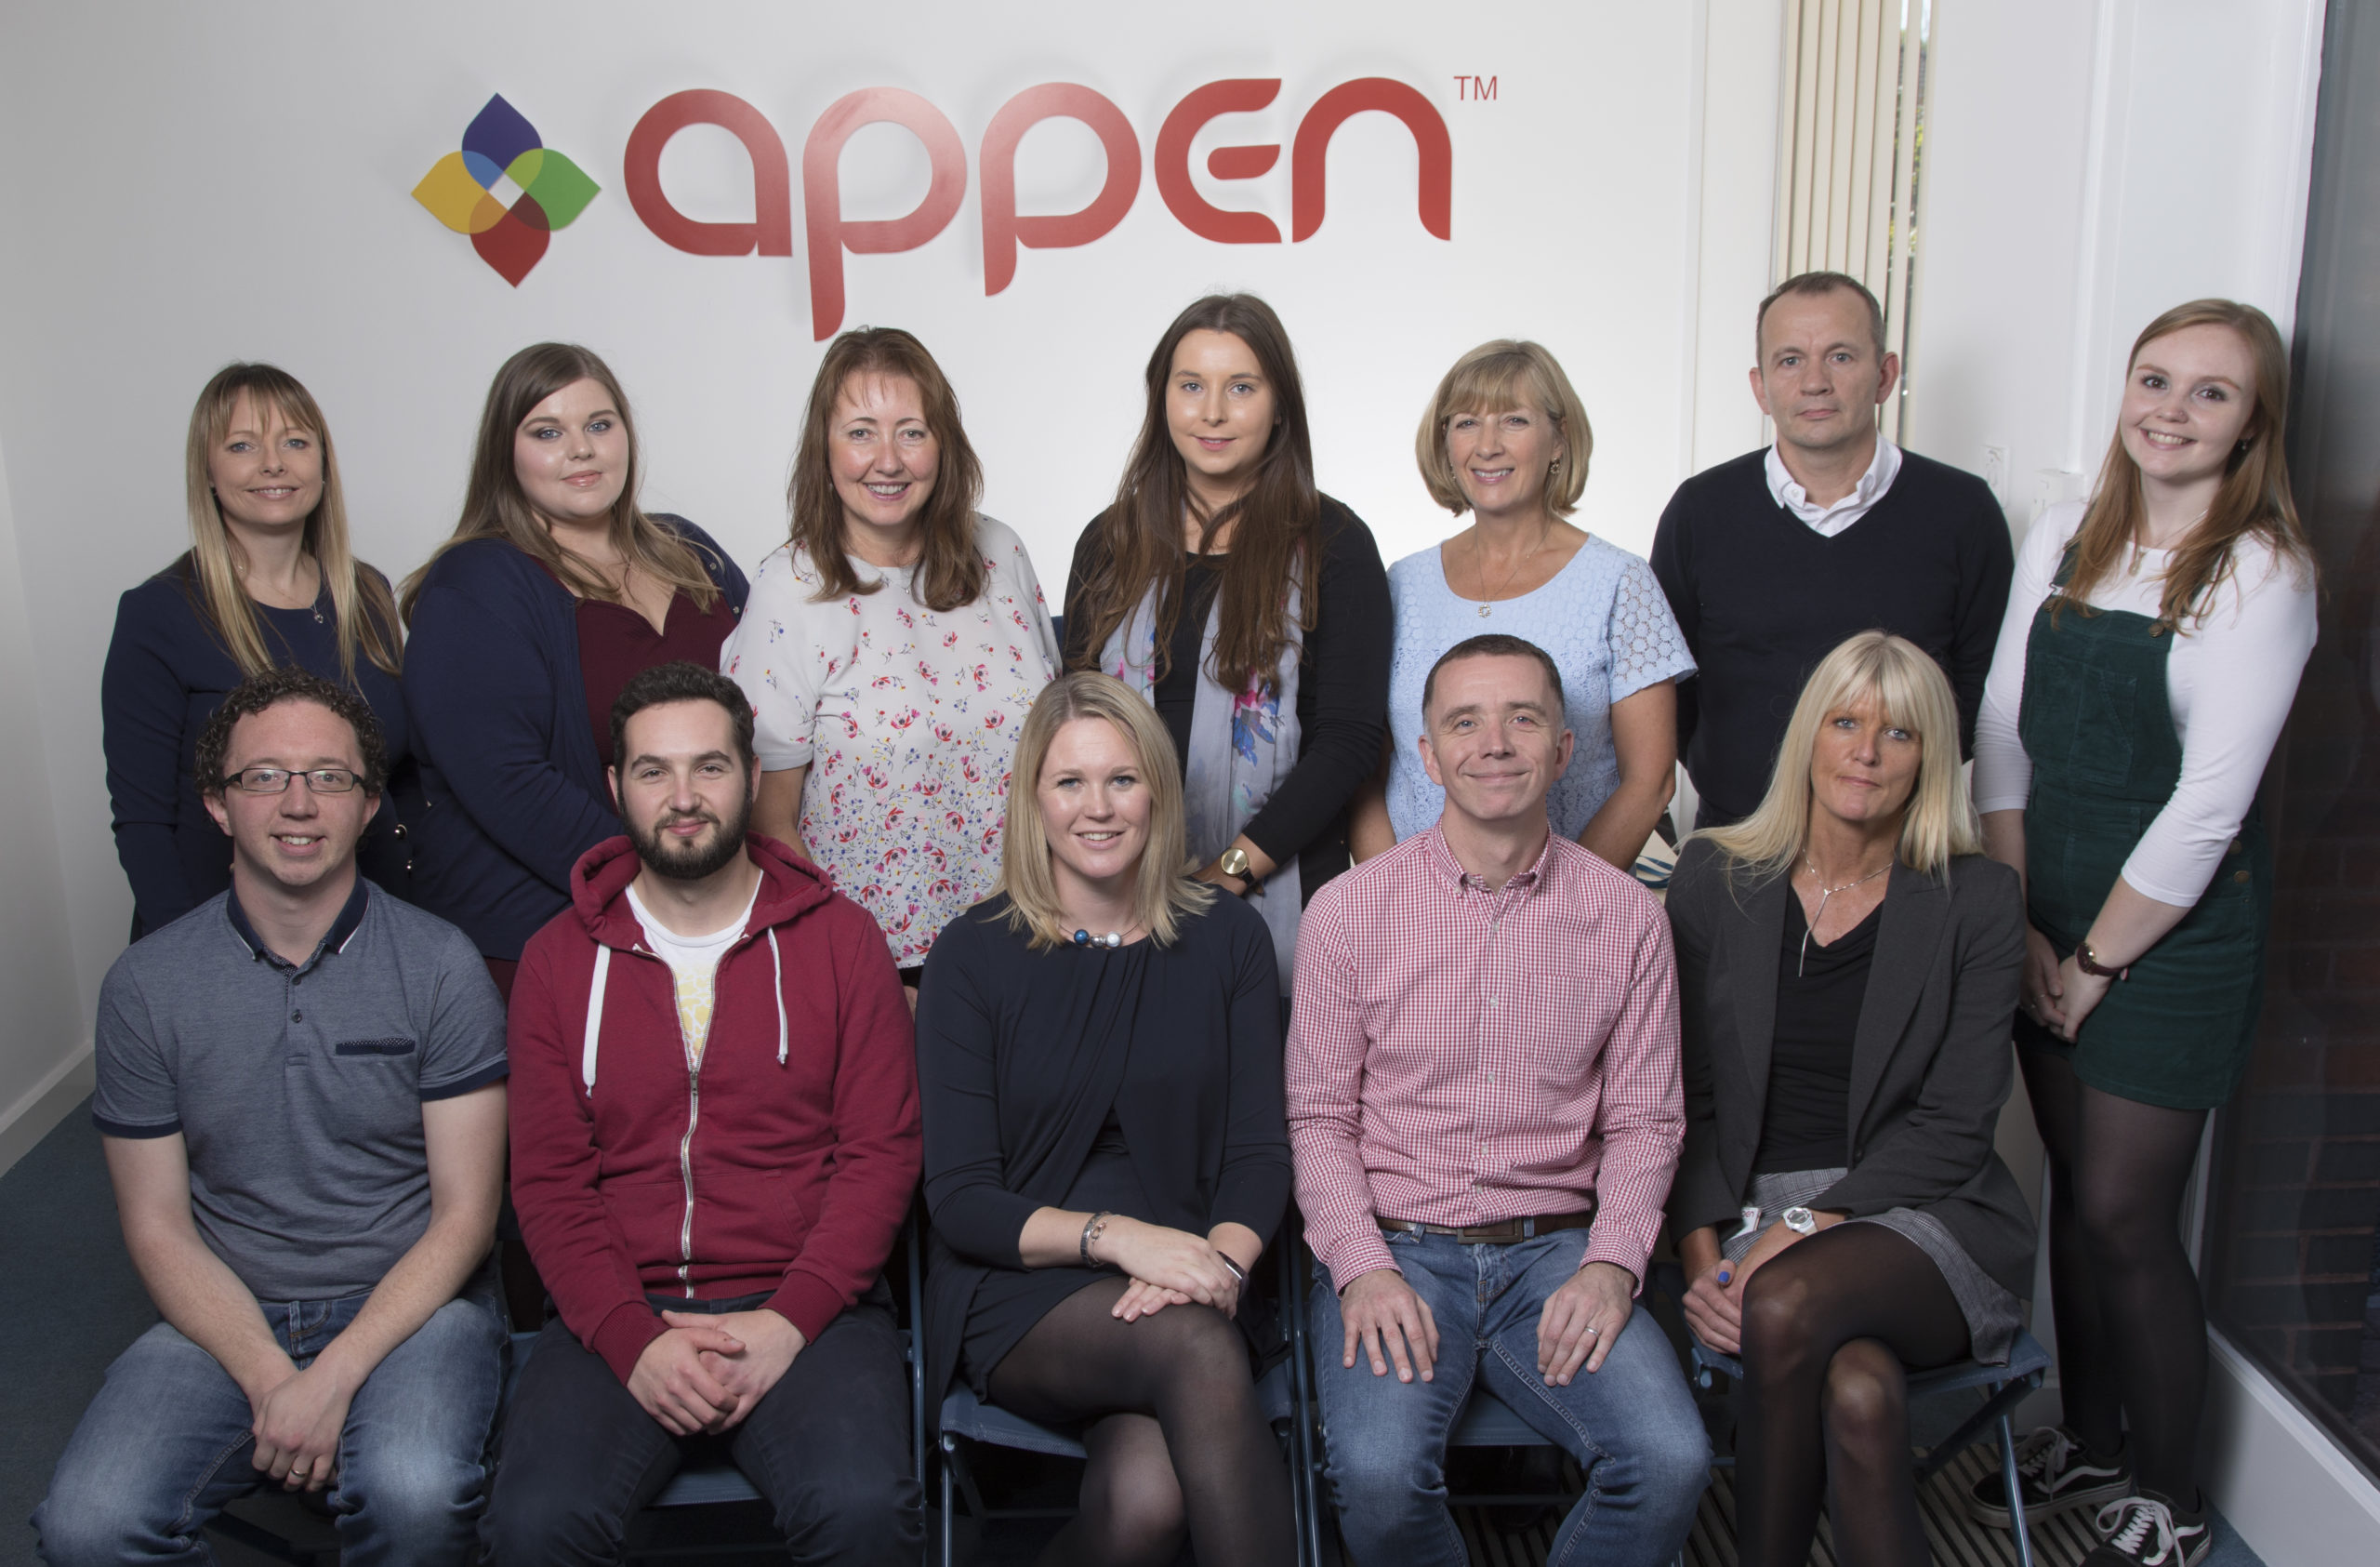 Parliamentary Review 2019: Appen's Vision for AI and Machine Learning